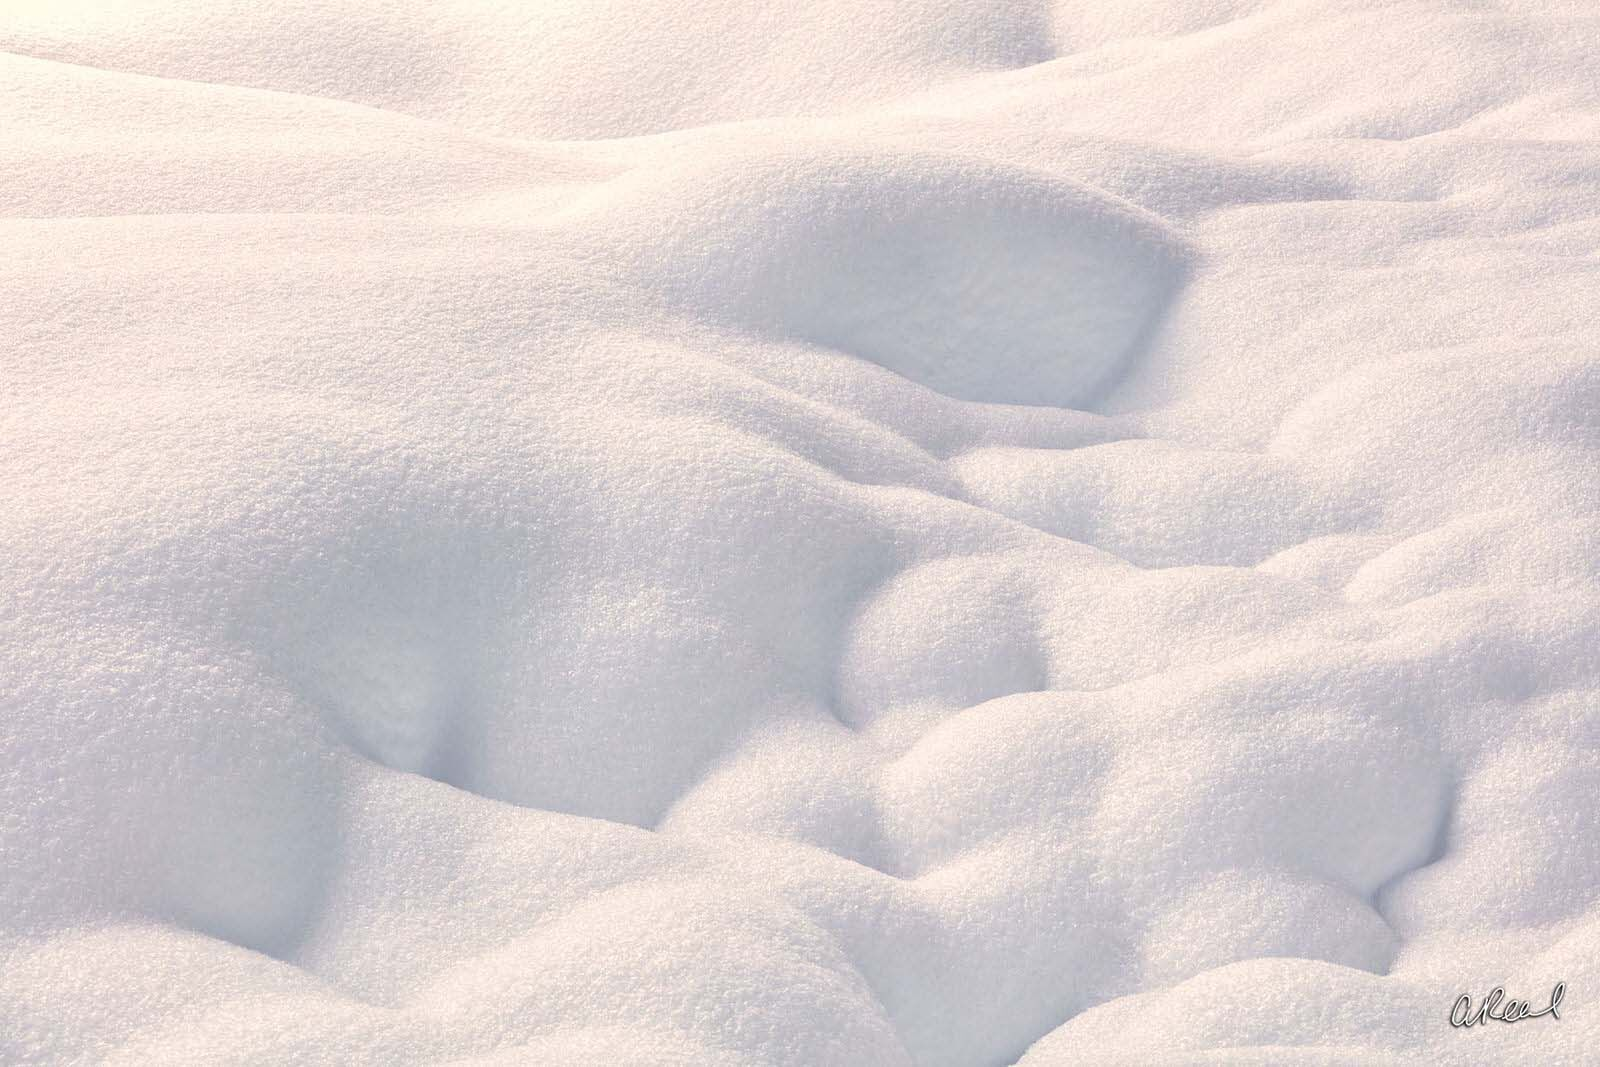 Snowpack, Fine Art, Limited Edition, Snow, Snowqualmie, Washington, Abstract, photo